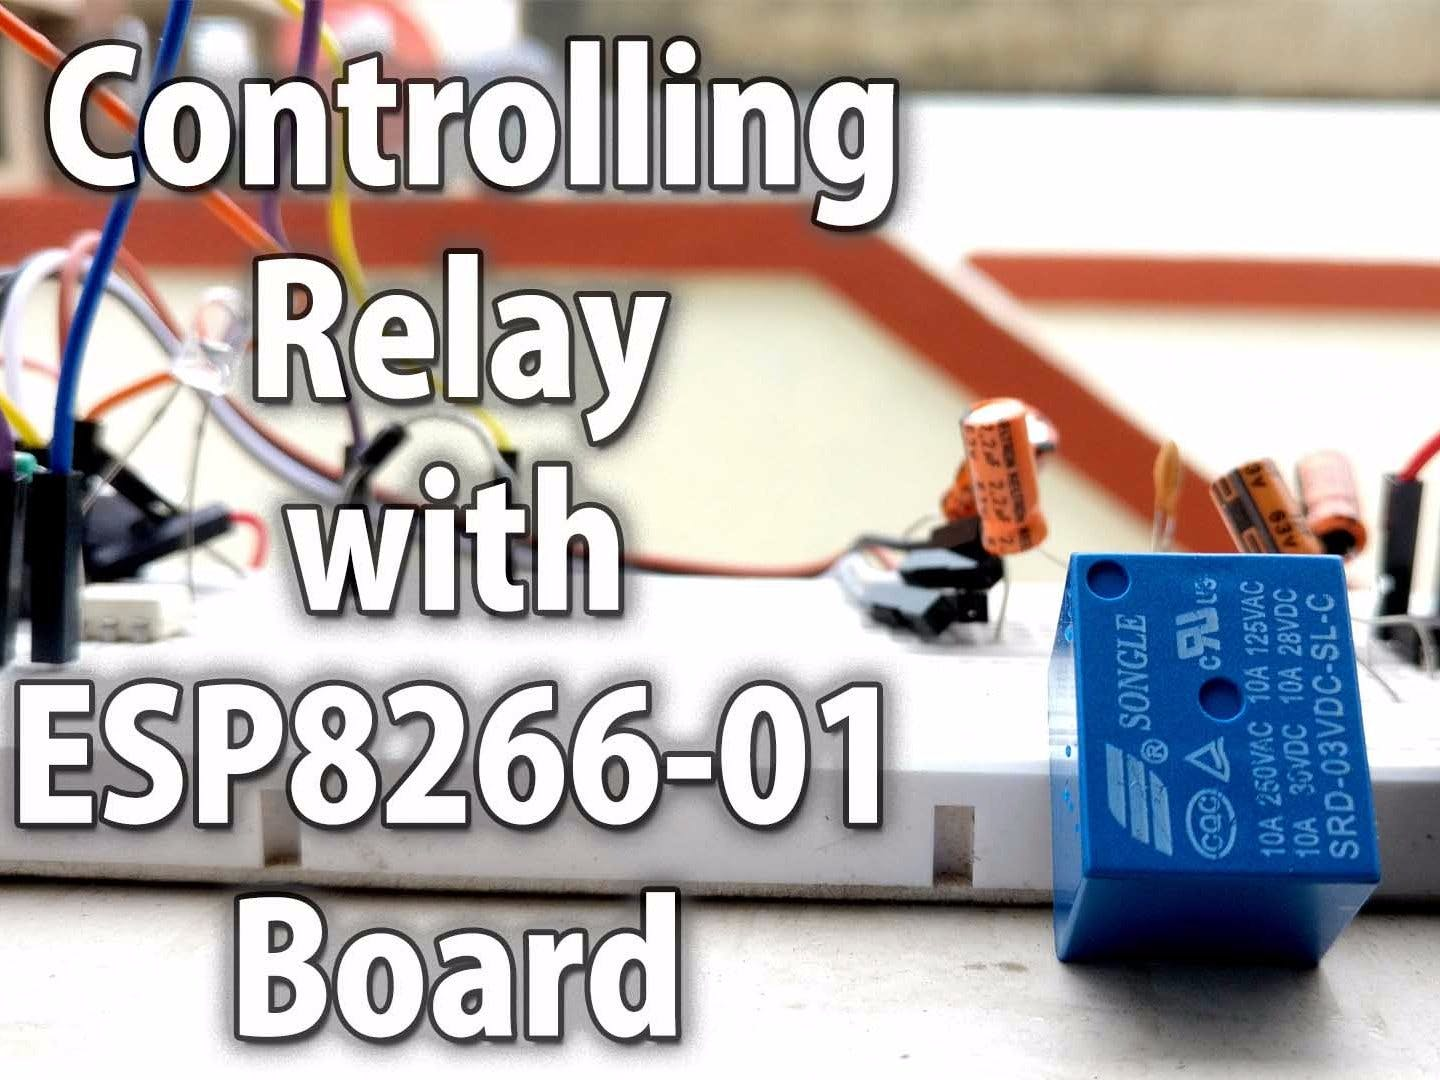 Control Relay with ESP8266 01 Module